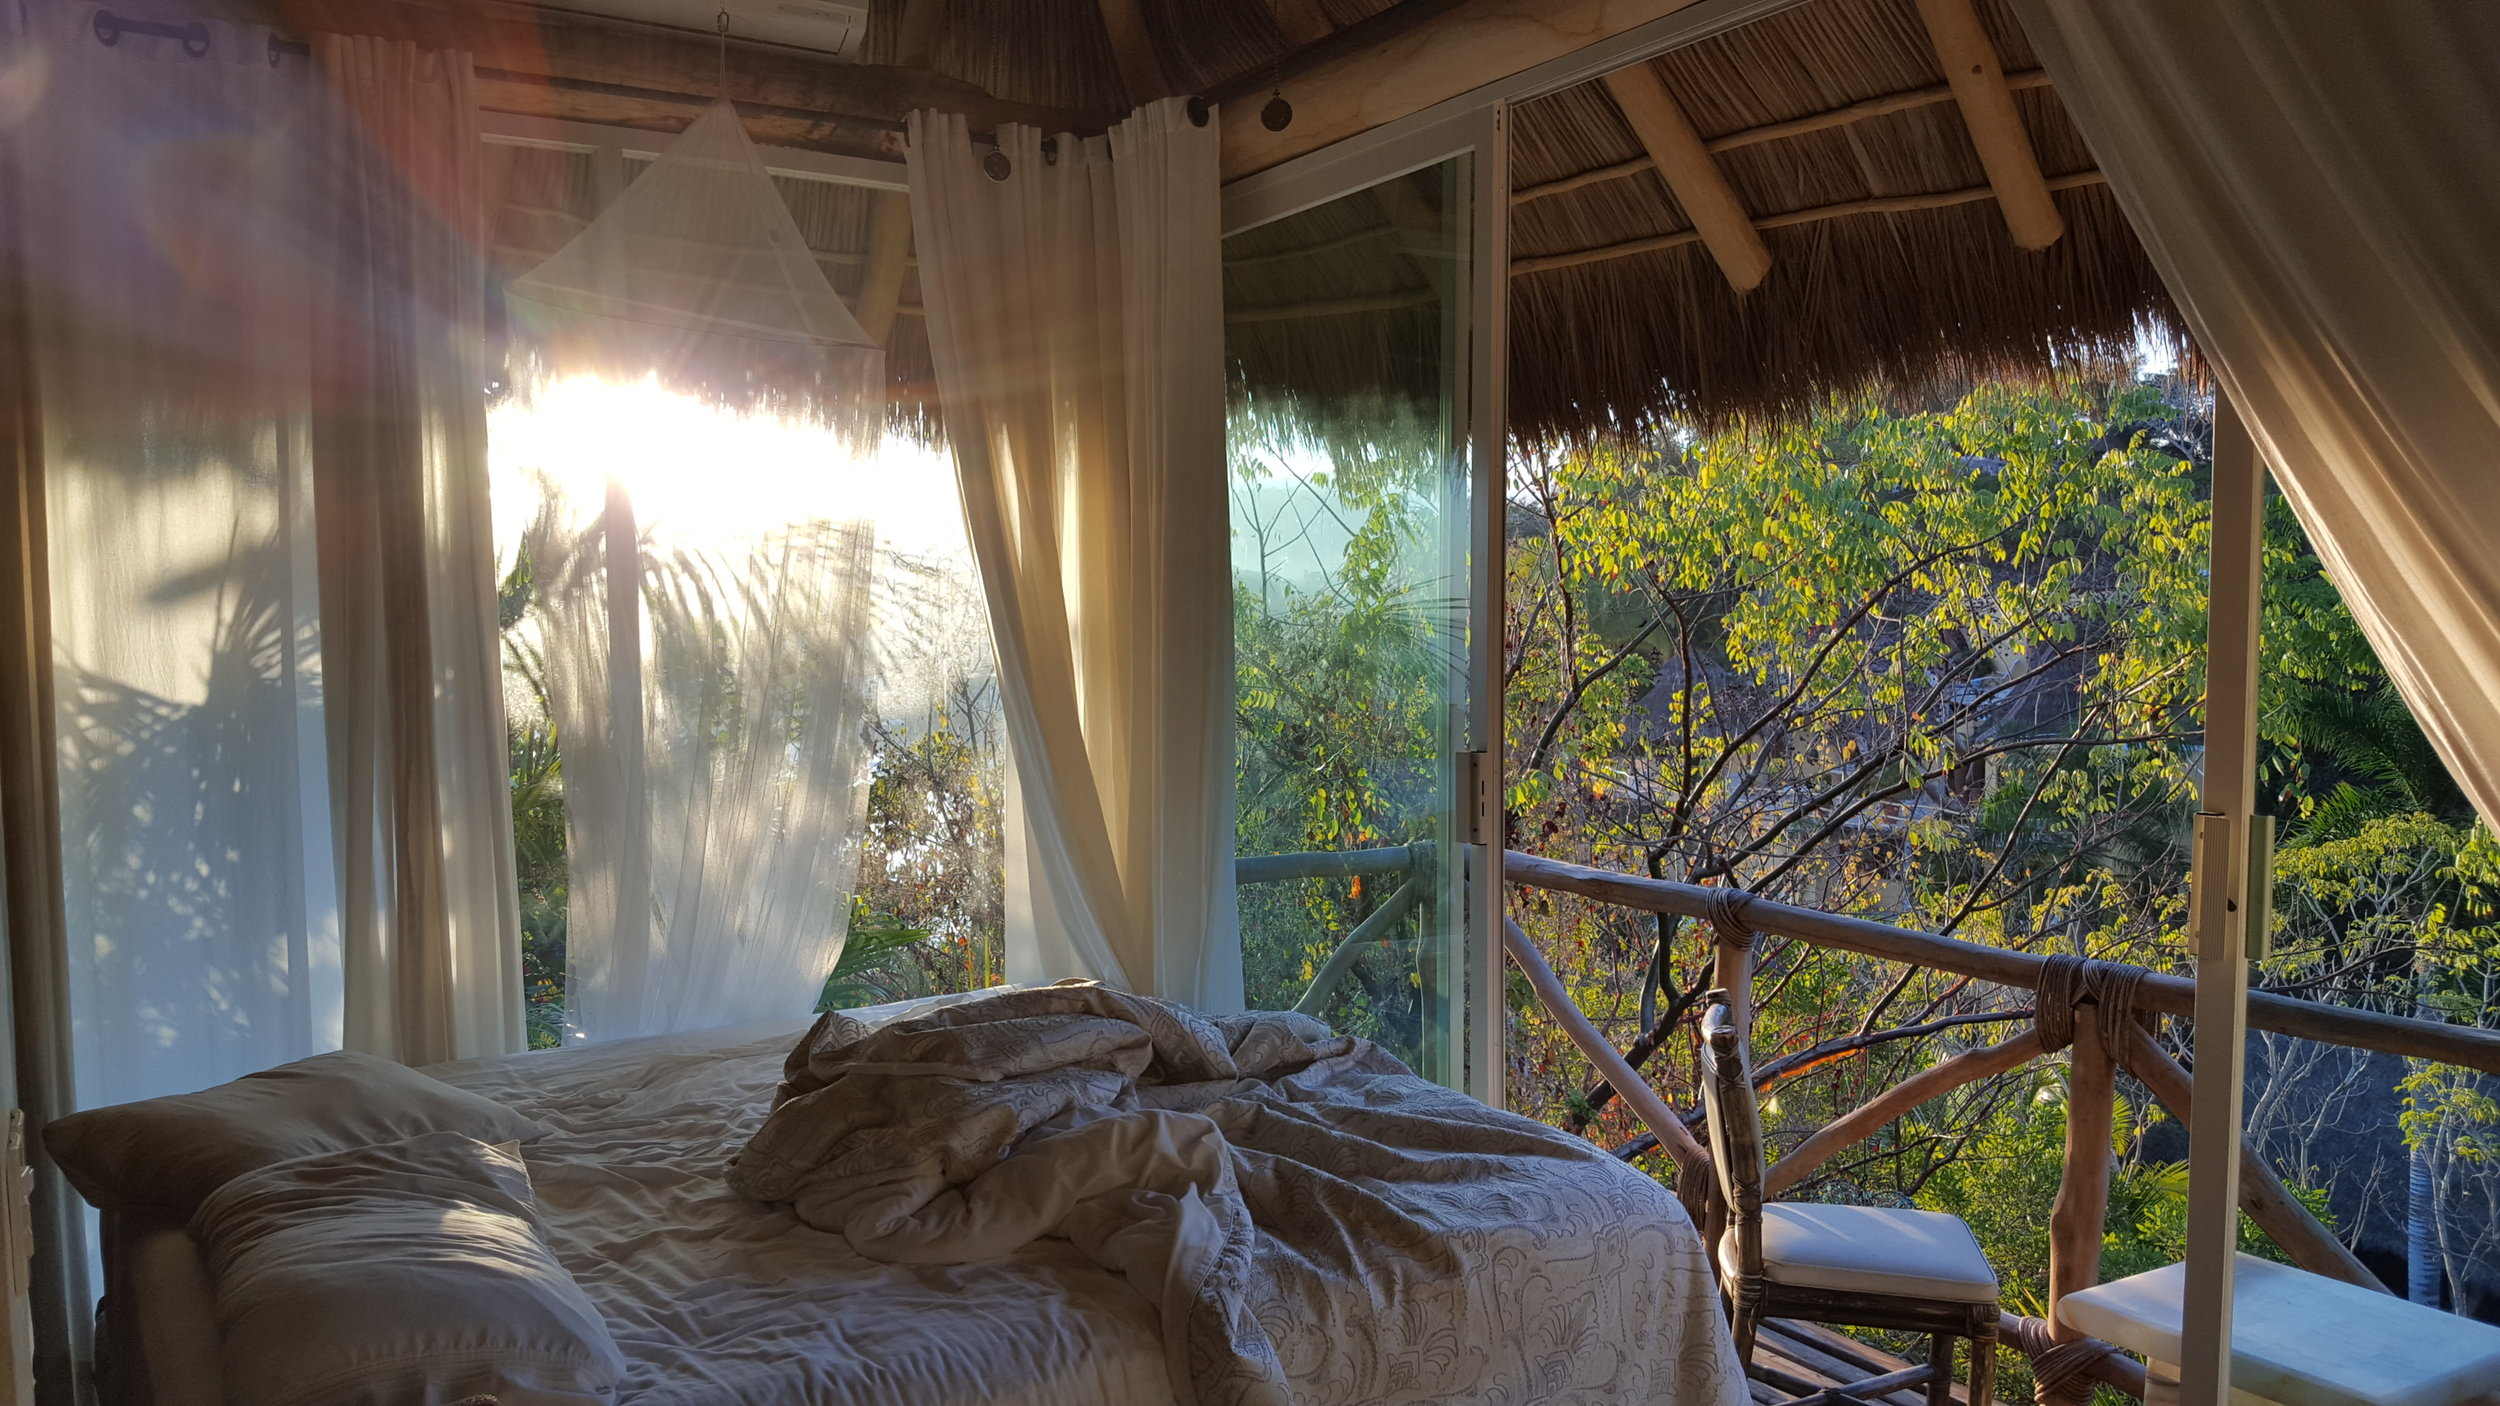 Mornings: Messy Bed, Ocean Breeze and Birds Singing.